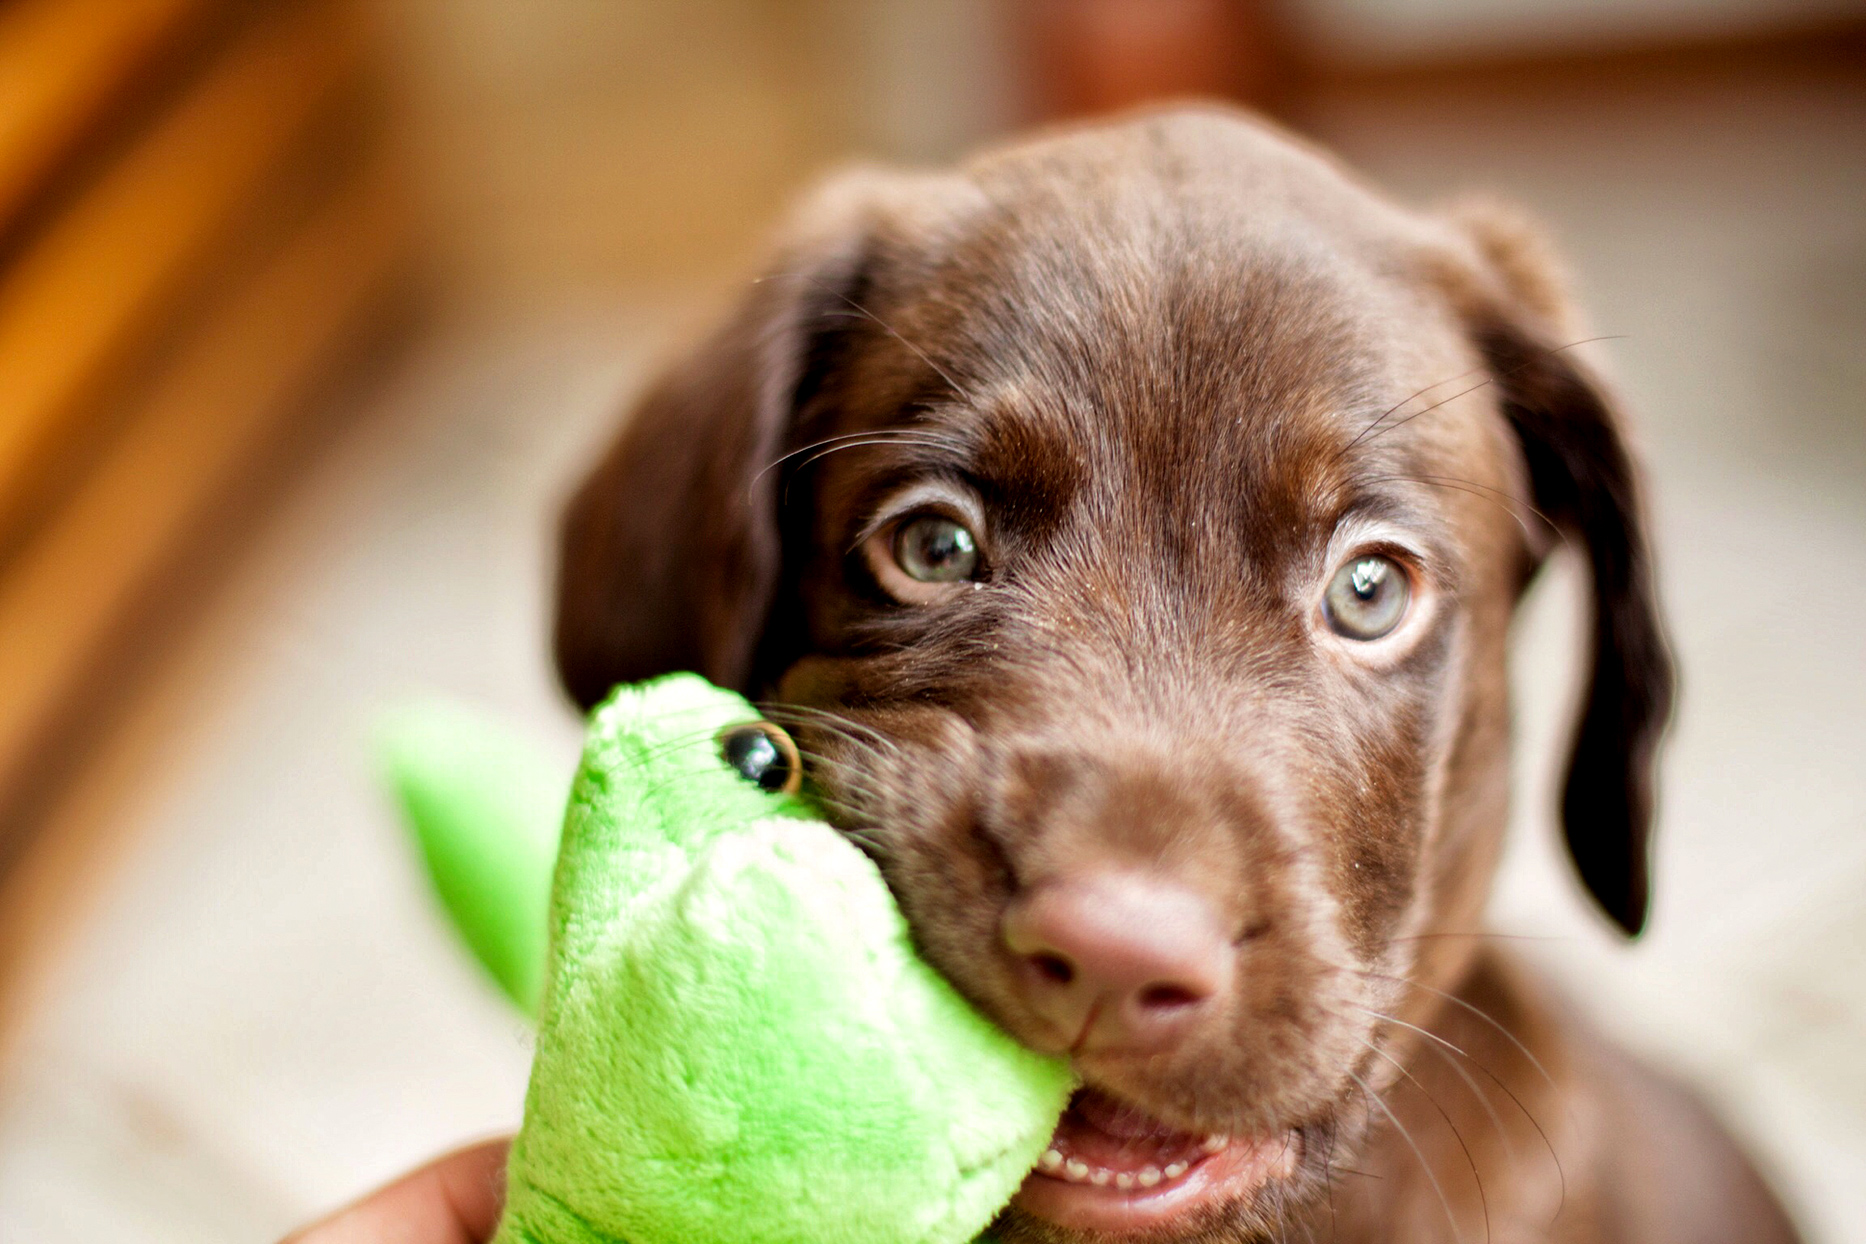 Chocolate Lab puppy chewing on a toy